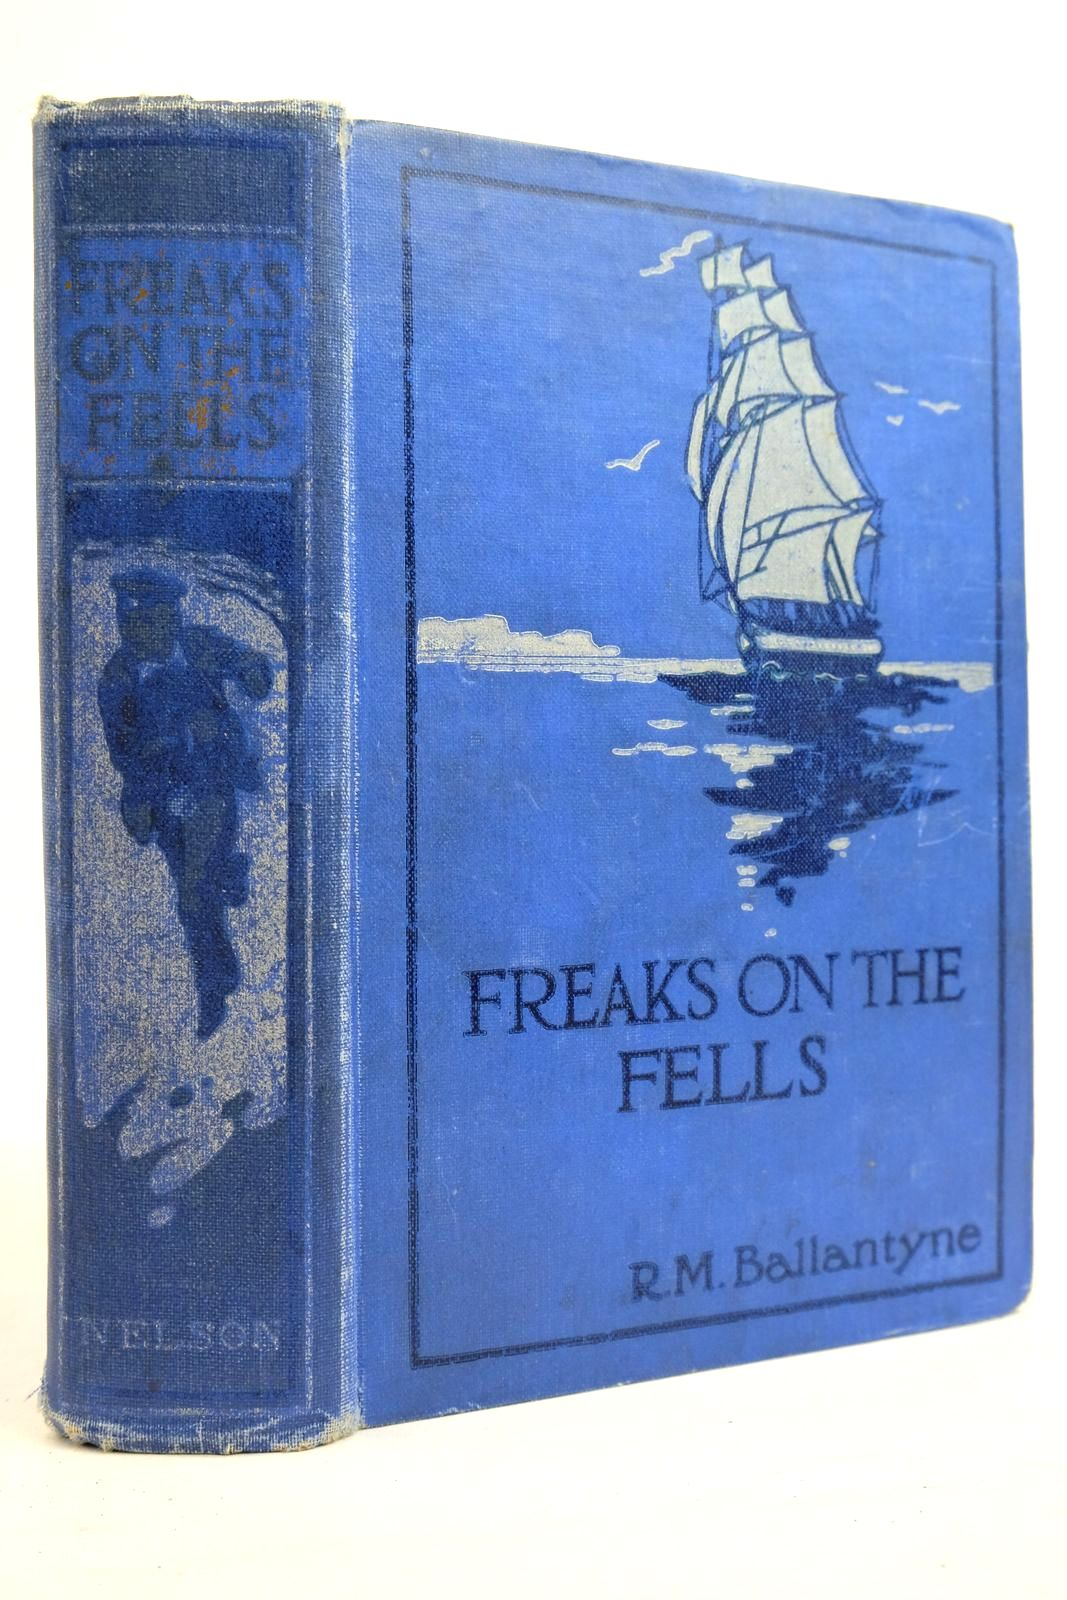 Photo of FREAKS ON THE FELLS AND WHY I DID NOT BECOME A SAILOR- Stock Number: 2134978